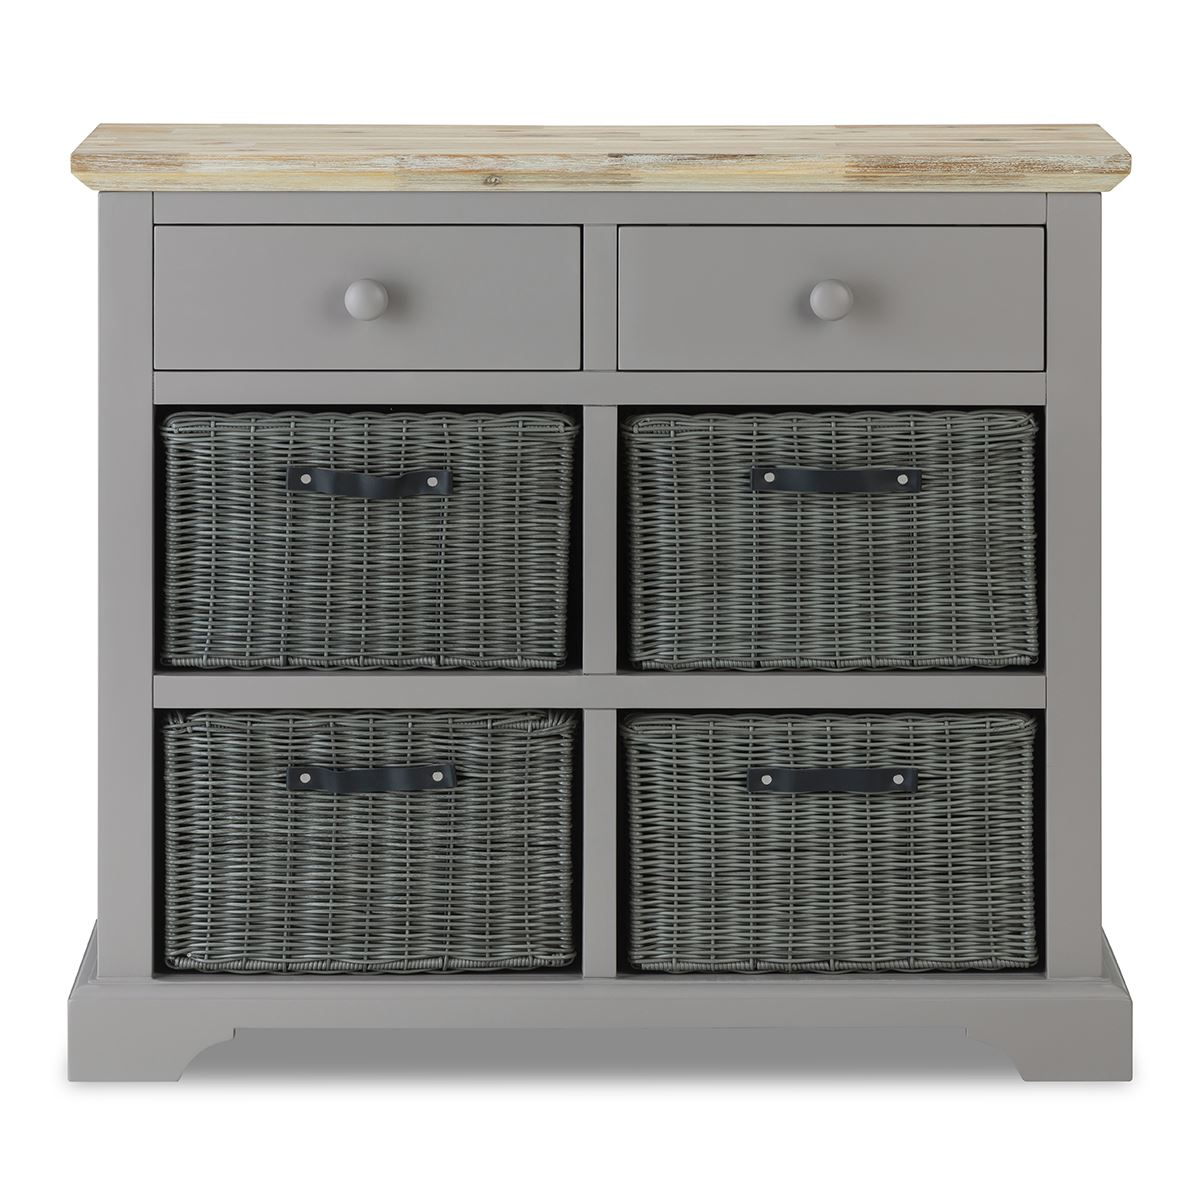 Florence Sideboard with drawers& 4 storage baskets Stunning sideboard ASSEMBLED eBay